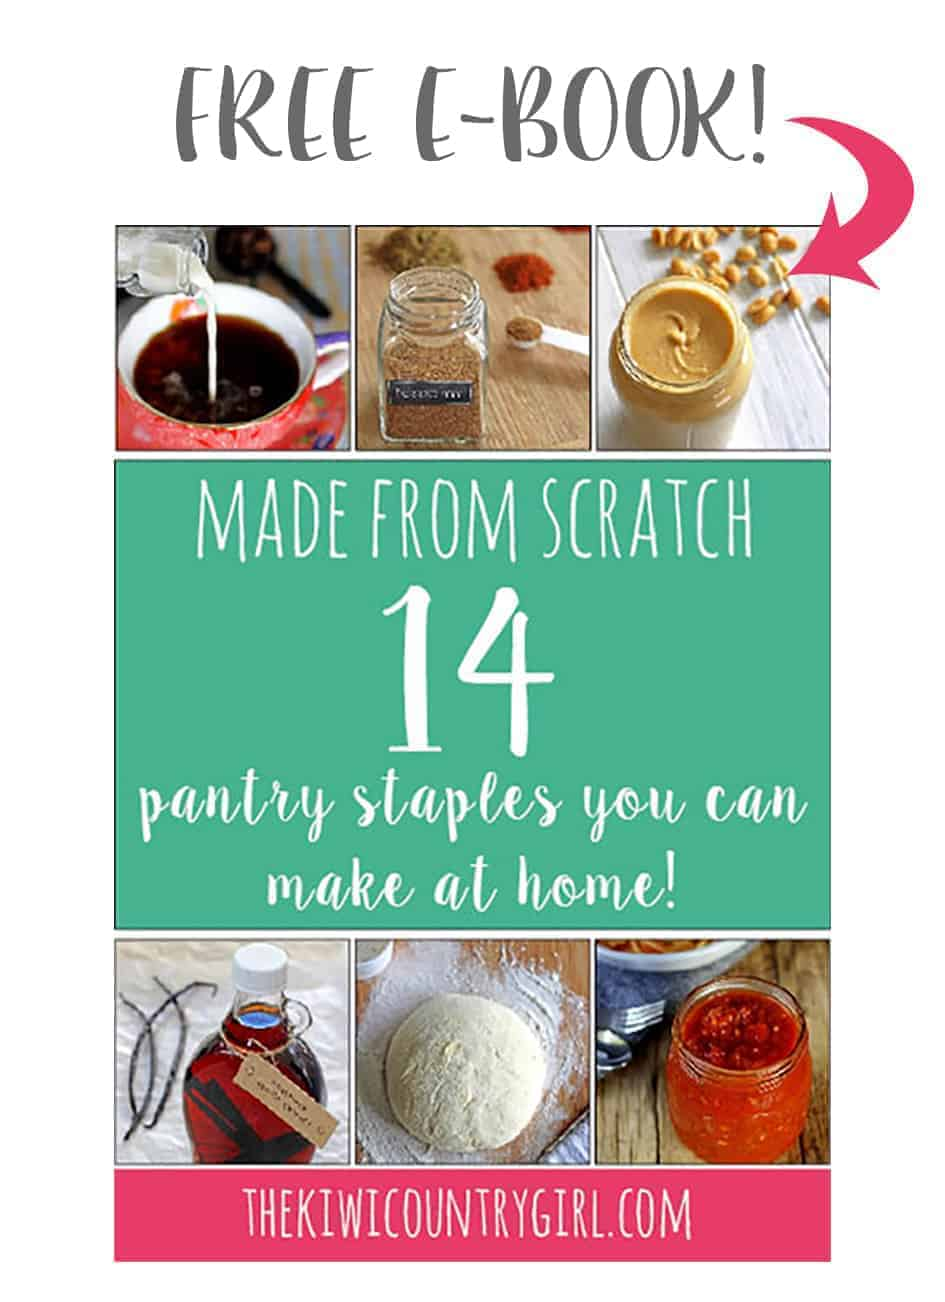 Subscribe to my email list and receive a free e-book with 14 made from scratch recipes! | thekiwicountrygirl.com